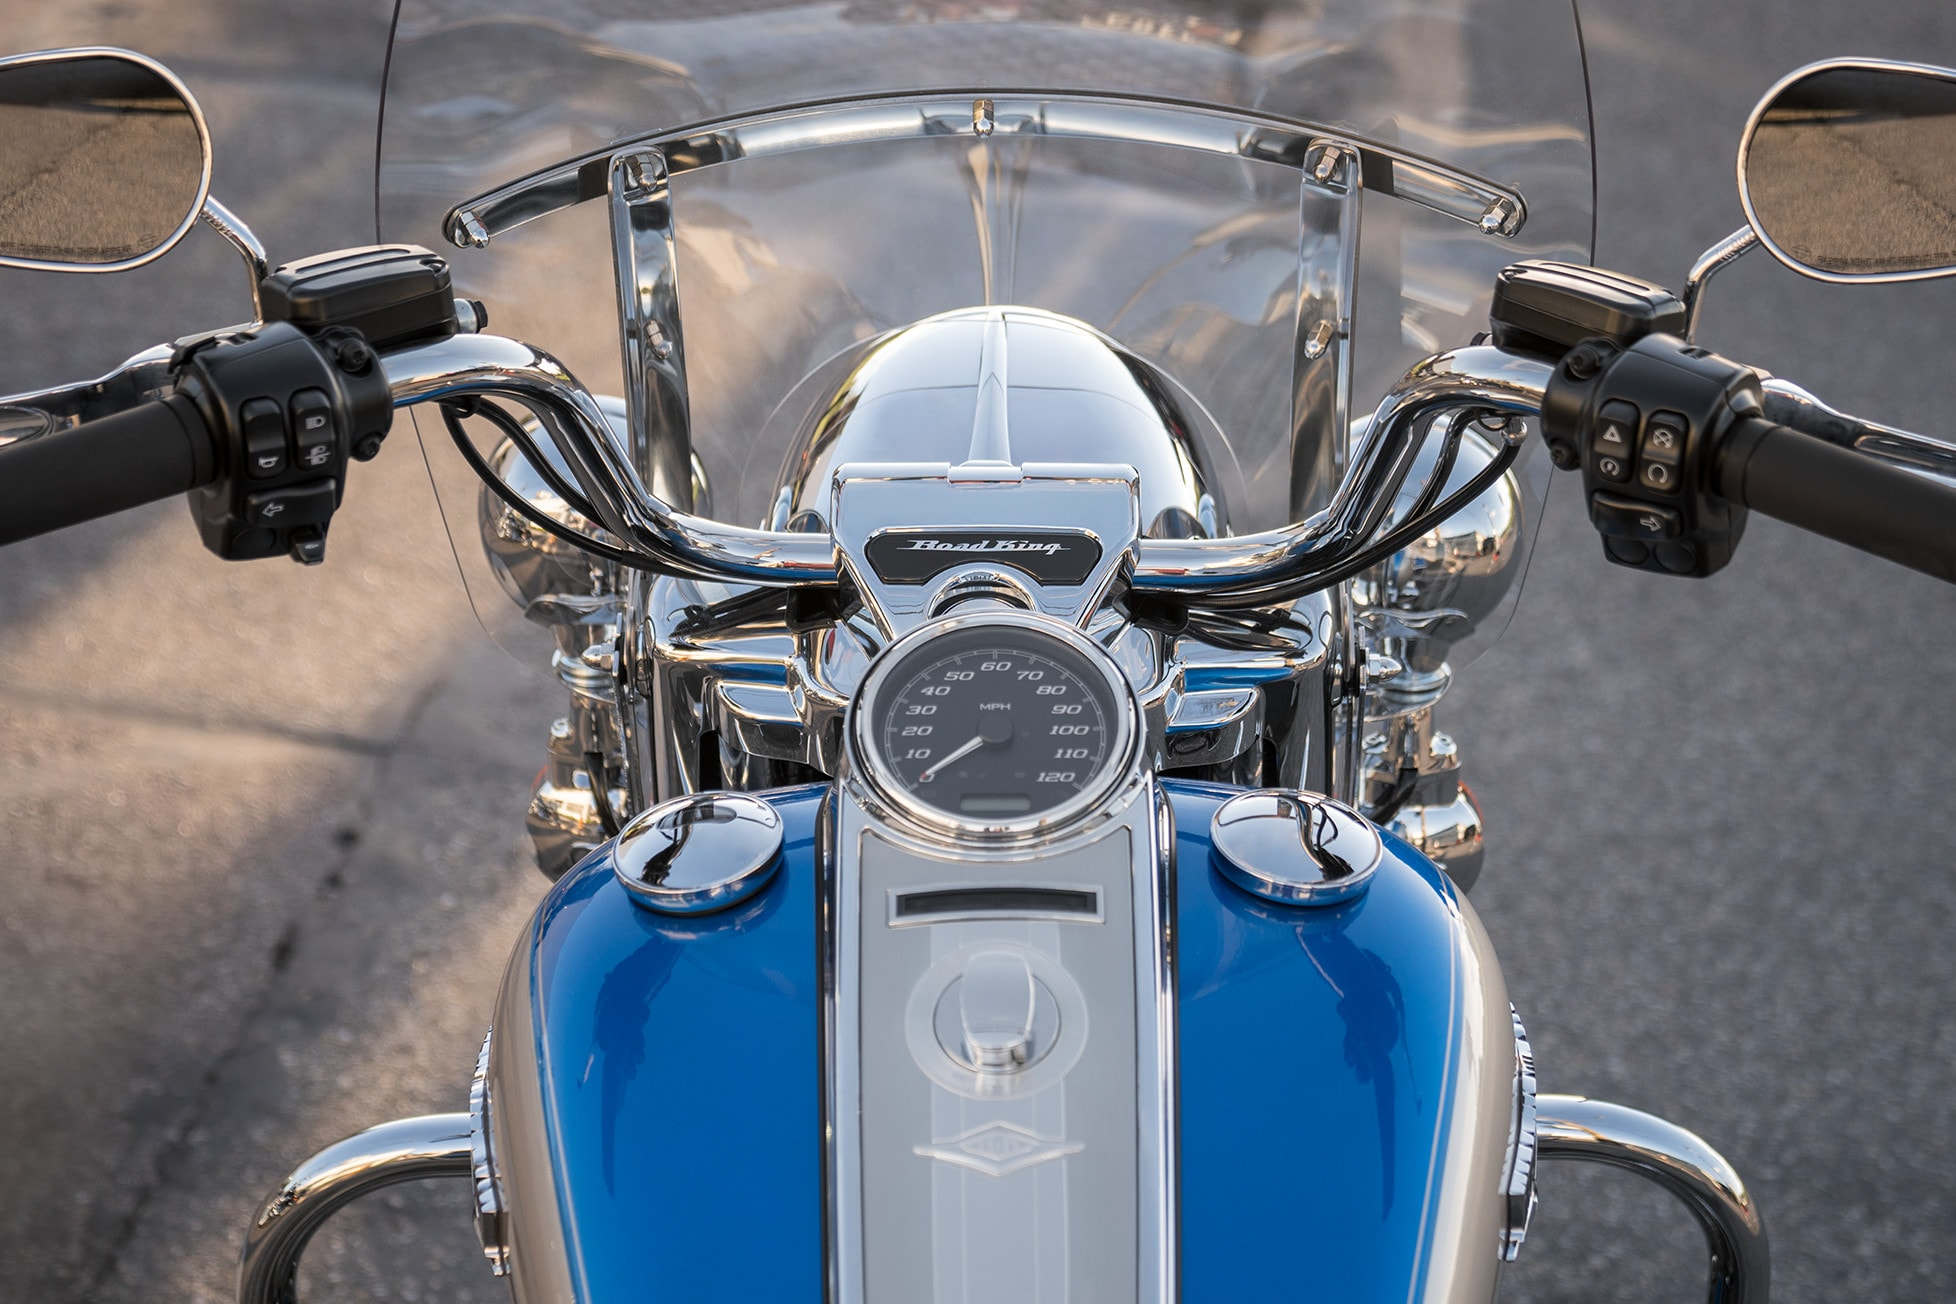 road king gallery 3?impolicy\=myresize\&rw\=1137 2013 road glide gas tank 4 wire diagram,glide \u2022 indy500 co  at n-0.co